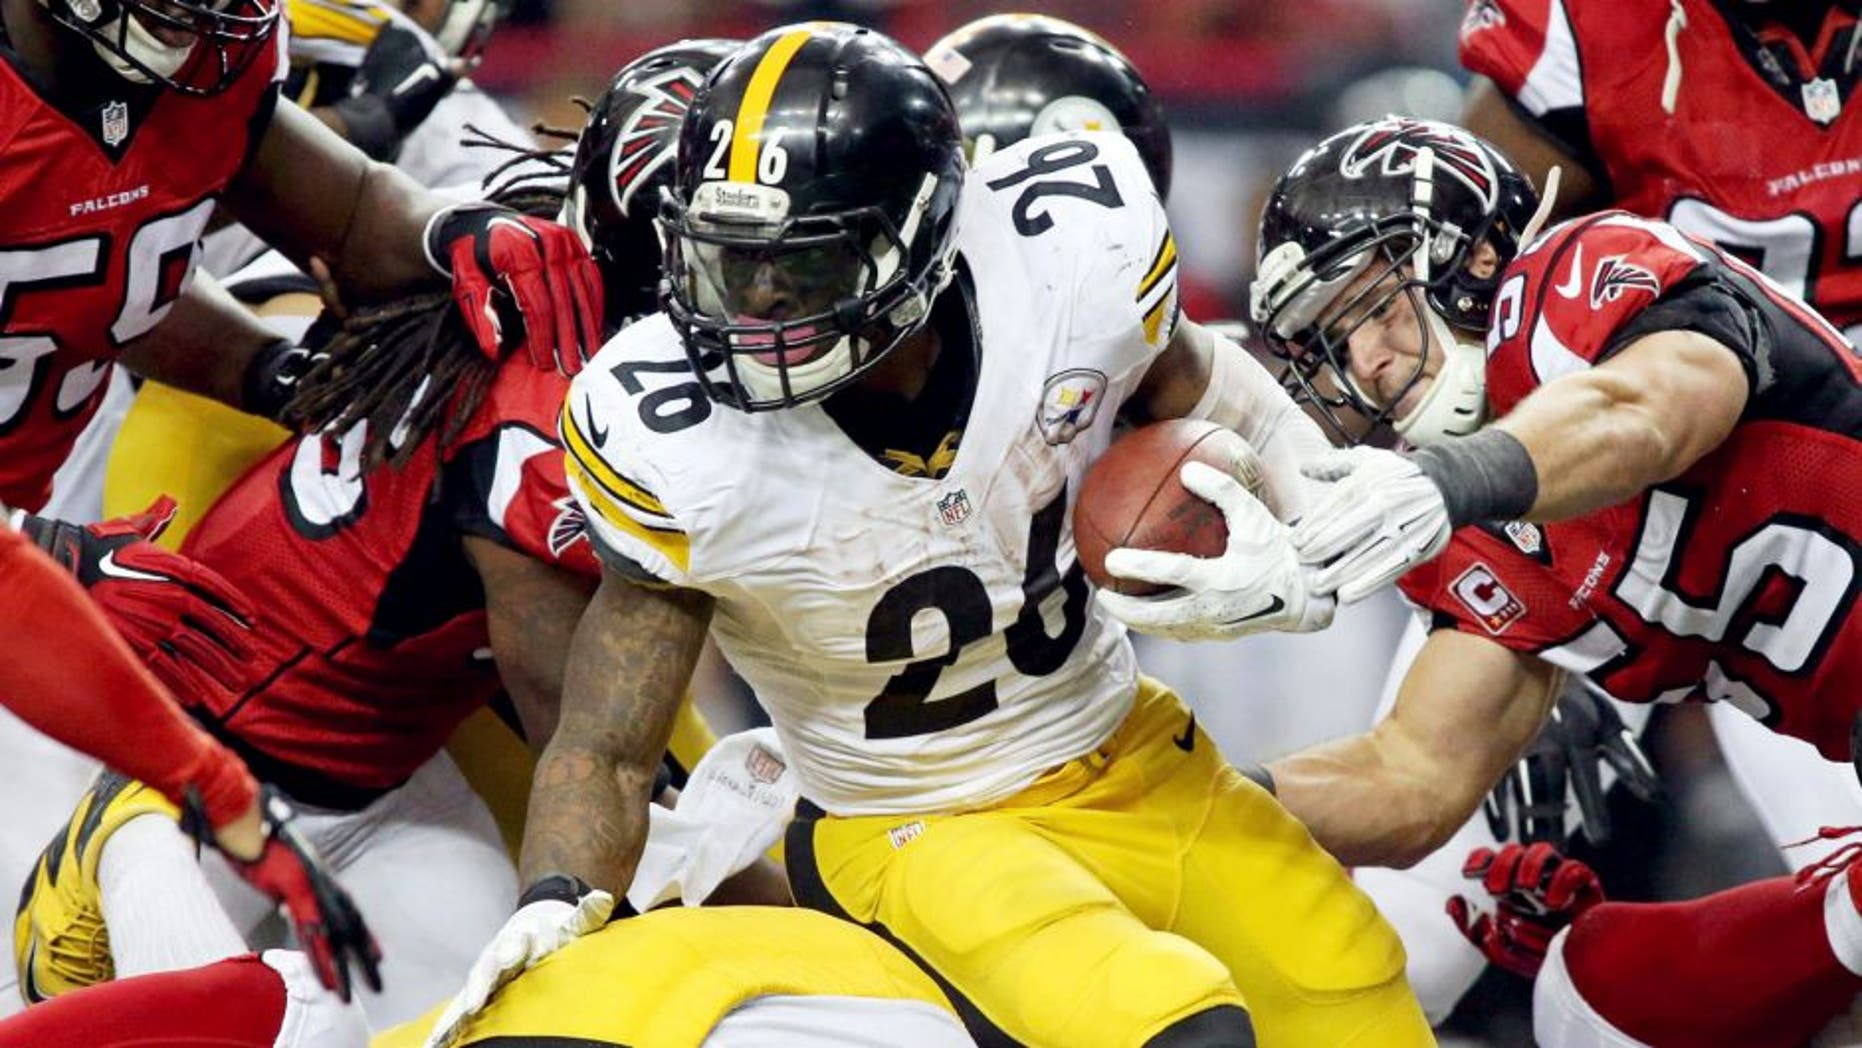 Dec 14, 2014; Atlanta, GA, USA; Pittsburgh Steelers running back Le'Veon Bell (26) fights for extra yards against Atlanta Falcons inside linebacker Paul Worrilow (55) and others in the fourth quarter of their game at the Georgia Dome. The Steelers won 27-20. Mandatory Credit: Jason Getz-USA TODAY Sports